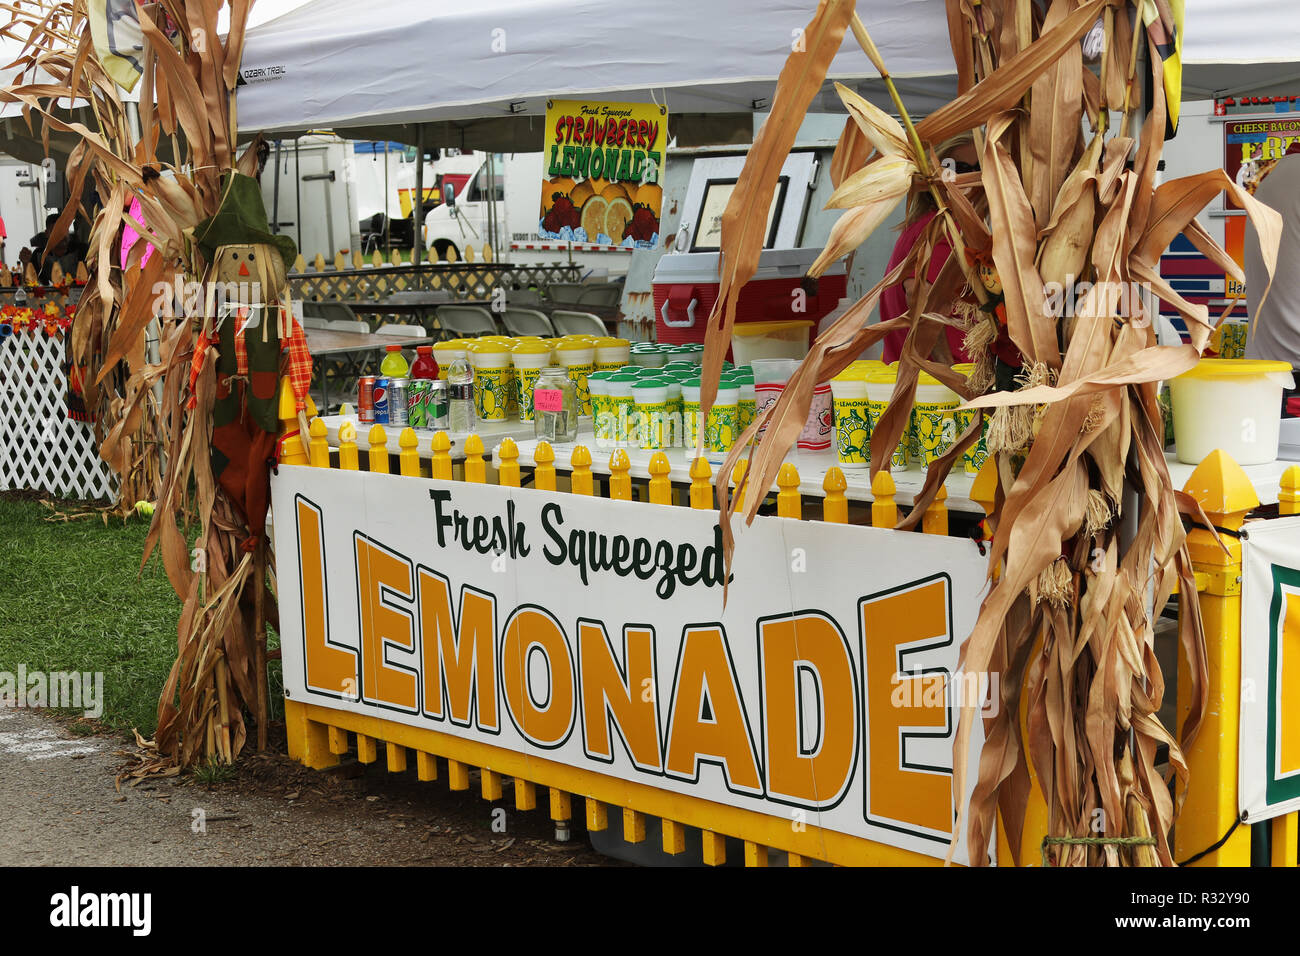 Lemonade concession stand. Canfield Fair. Mahoning County Fair. Canfield, Youngstown, Ohio, USA. - Stock Image